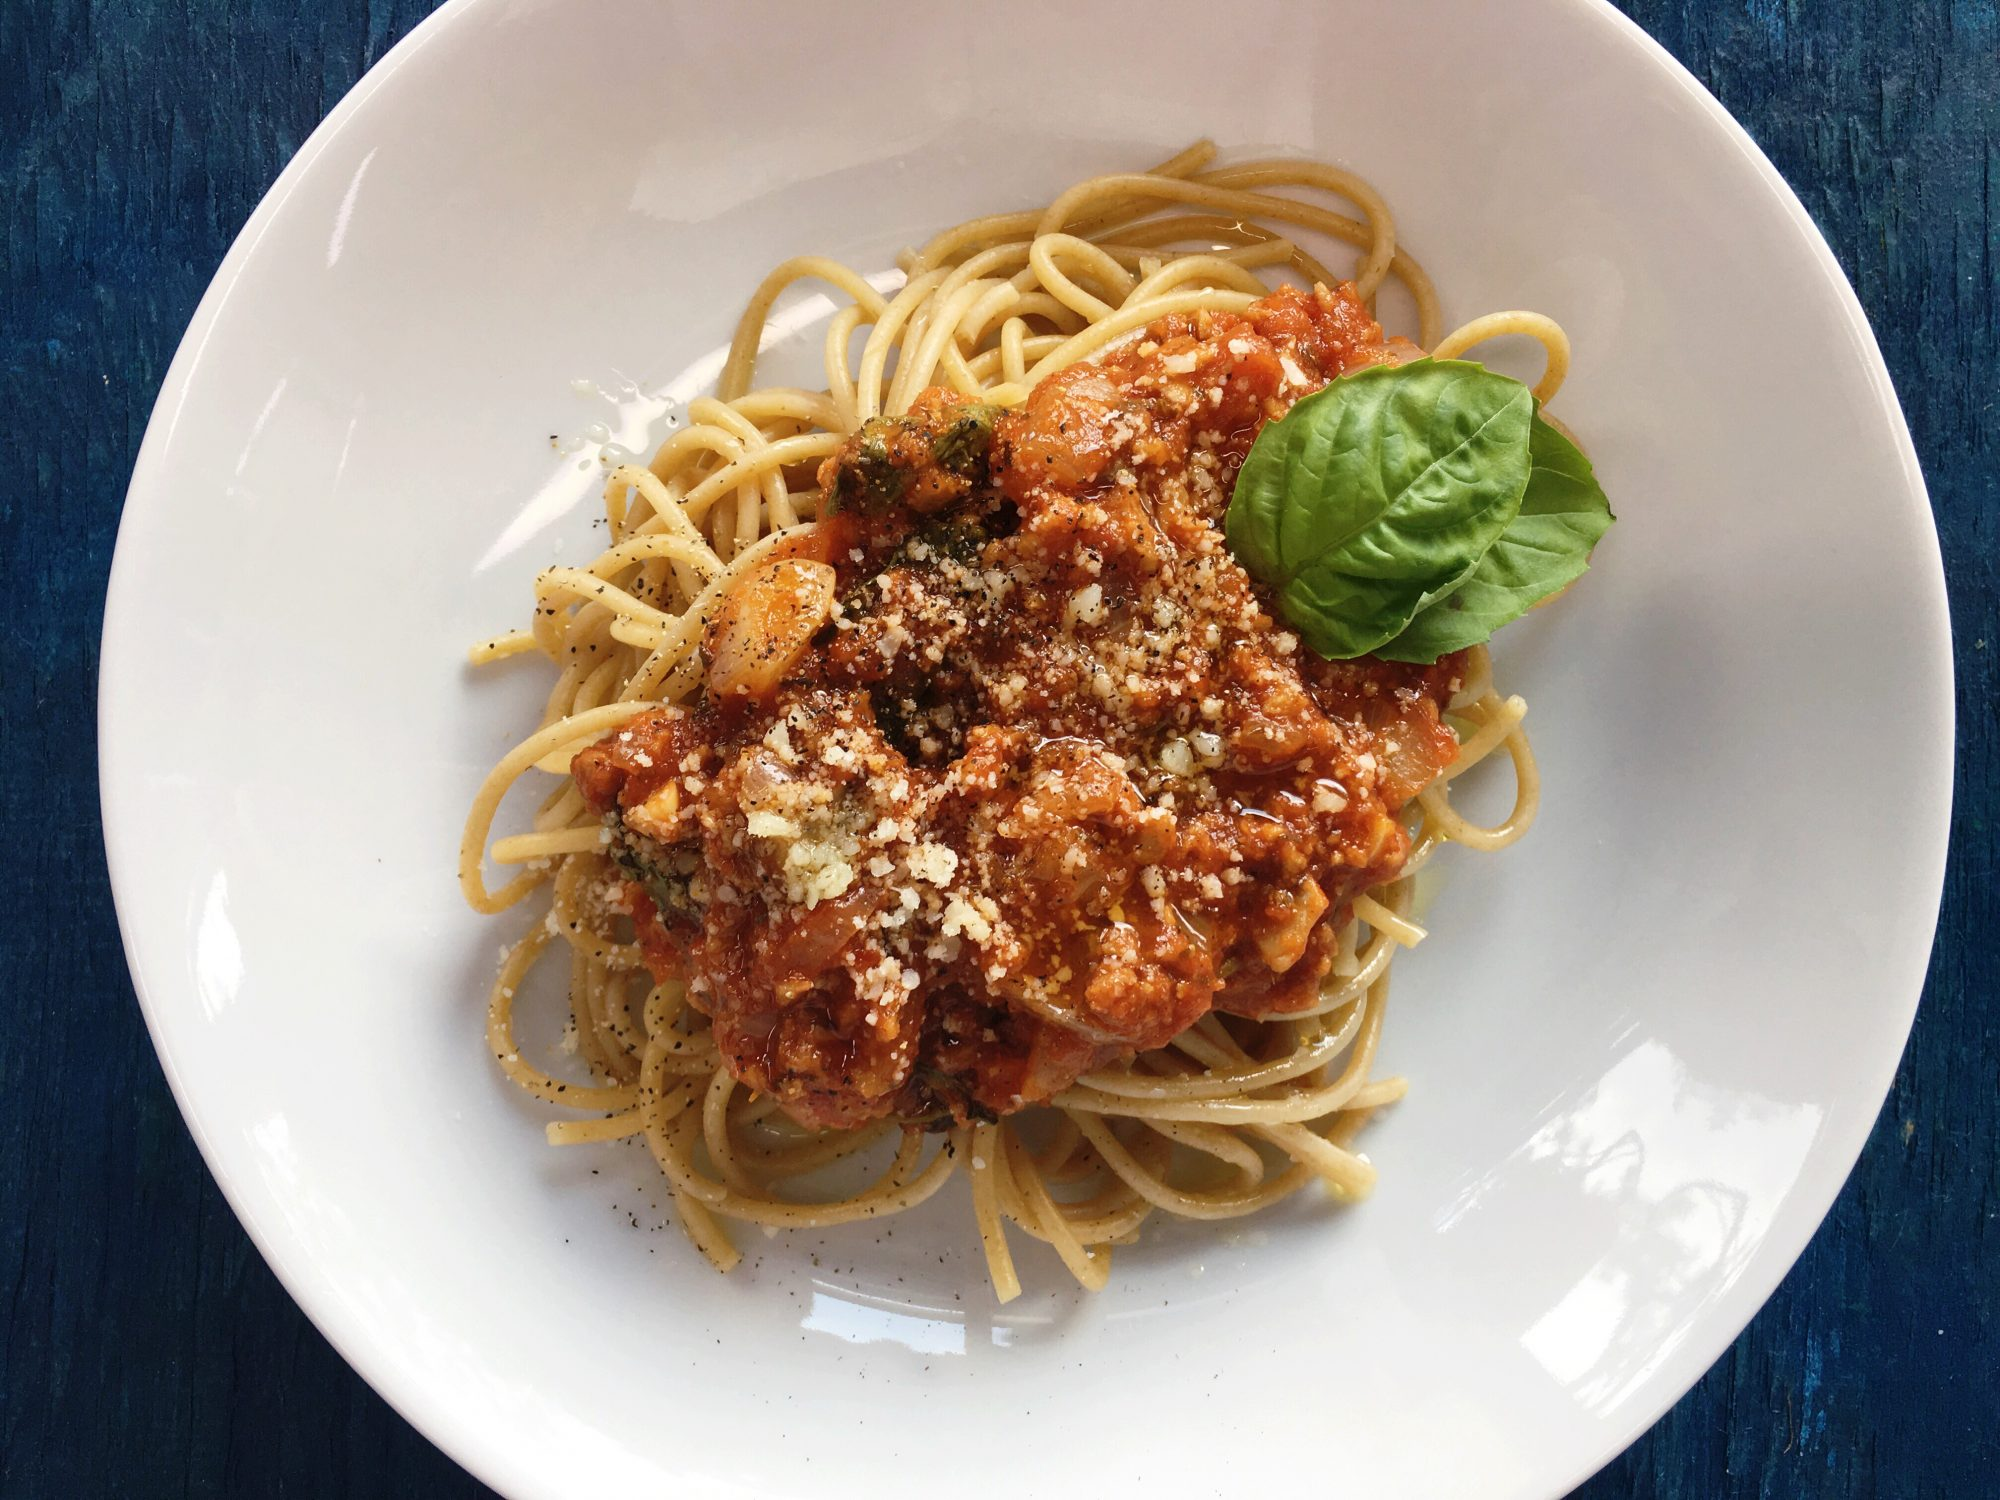 mr-spaghetti-with-vegetarian-meat-sauce-image